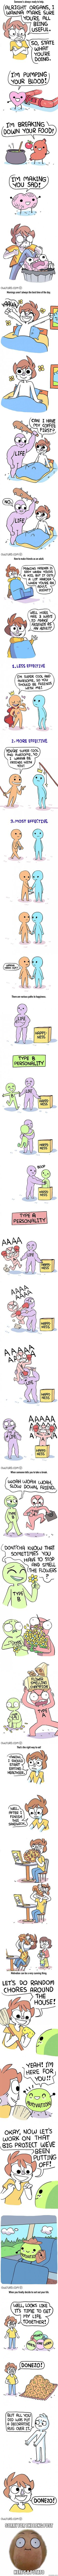 Brilliant Owlturd comic strips showing what adulthood is really like - 9GAG http://ibeebz.com